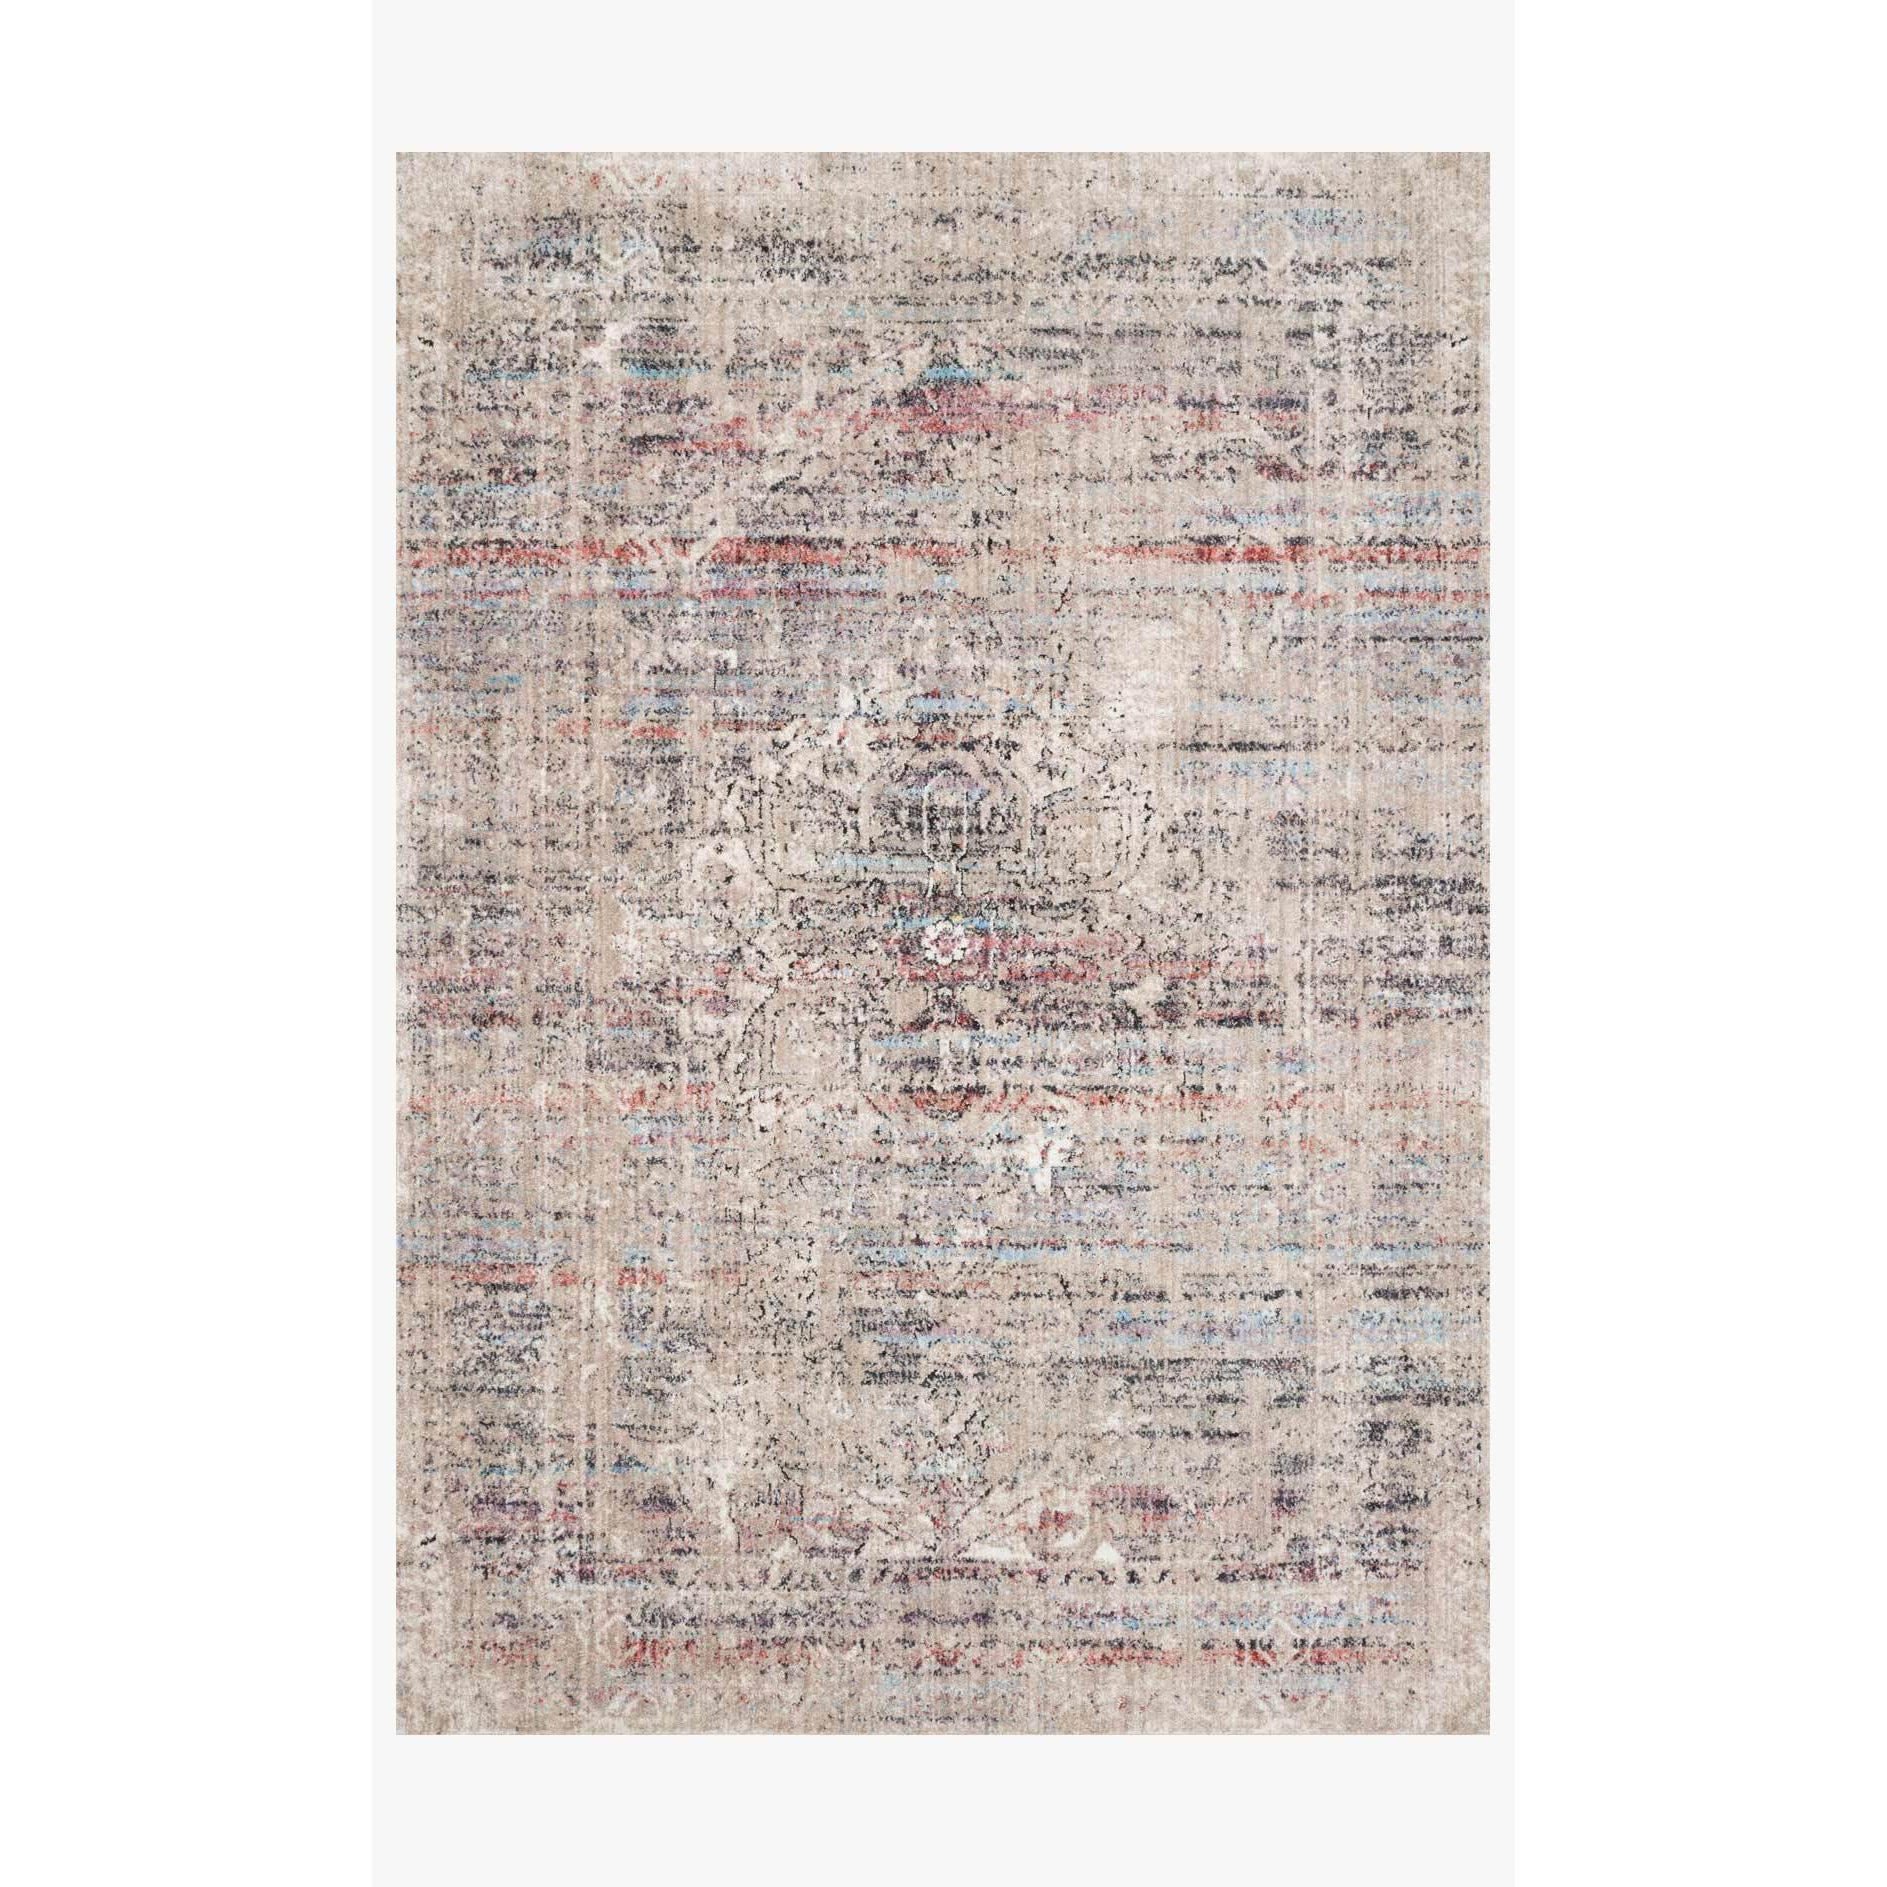 Dante Rugs by Loloi - DN-02 Beige / Multi-Loloi Rugs-Blue Hand Home